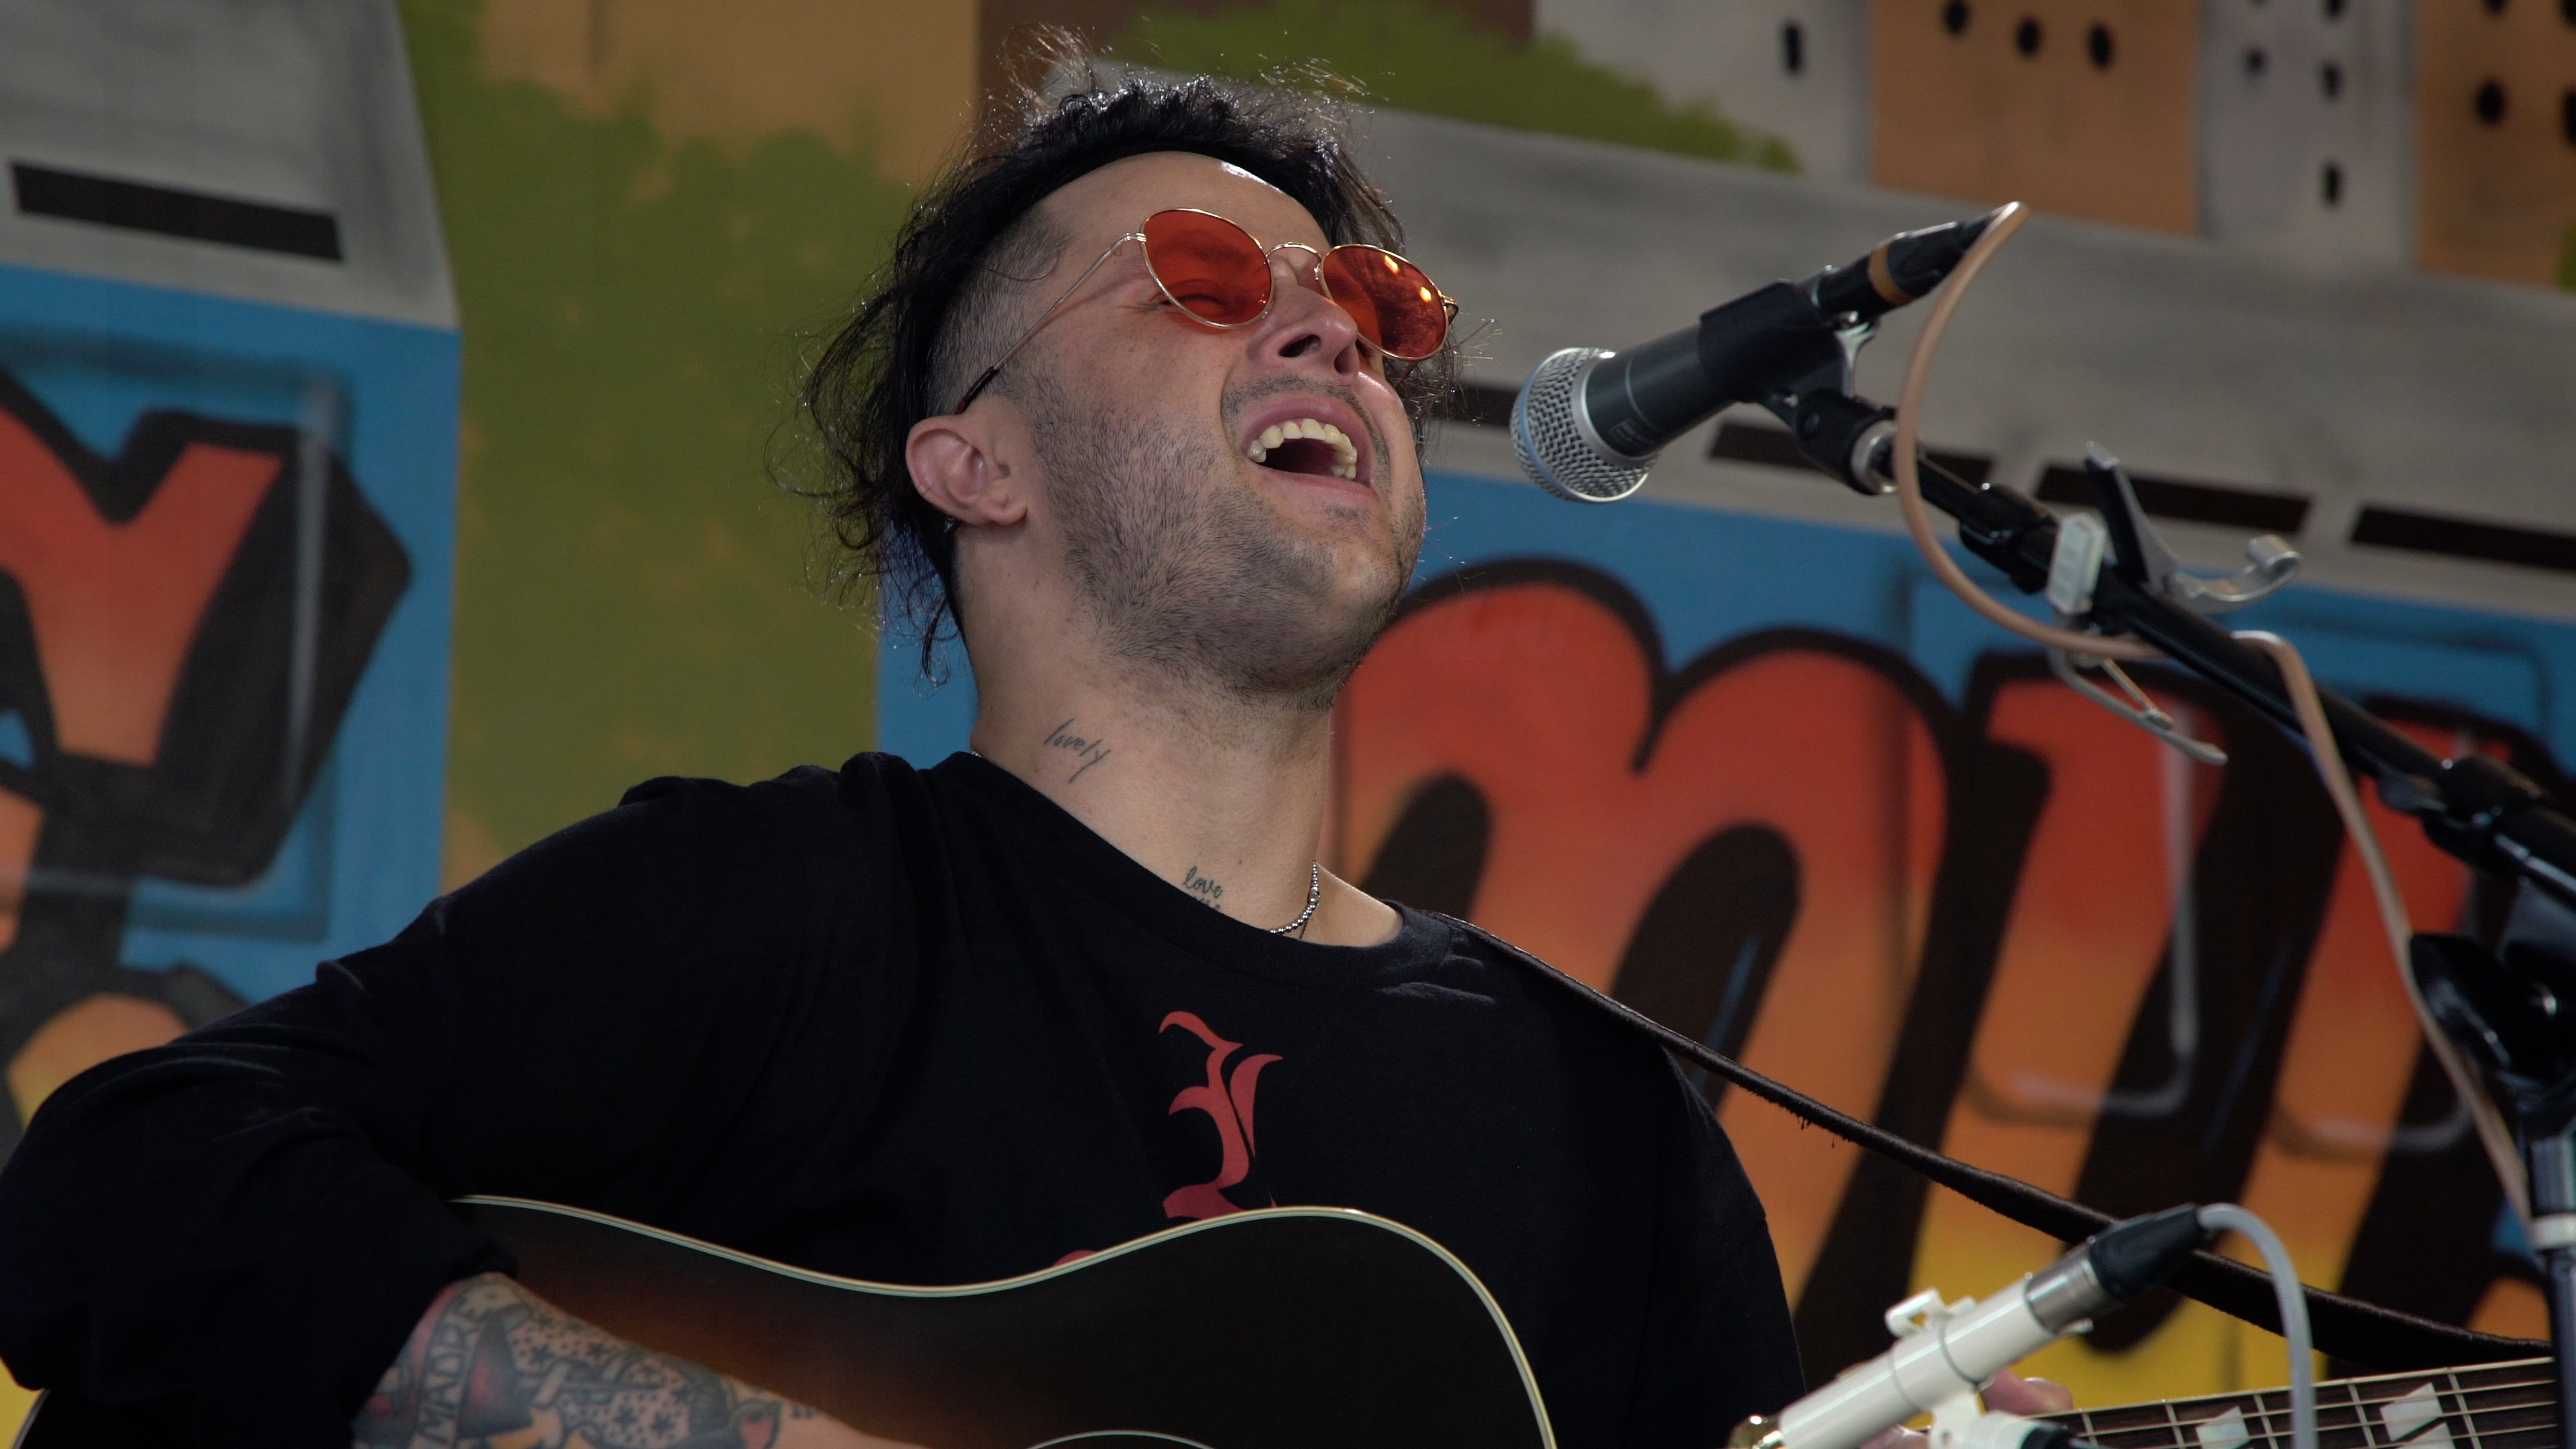 lovelytheband at Baeble HQ